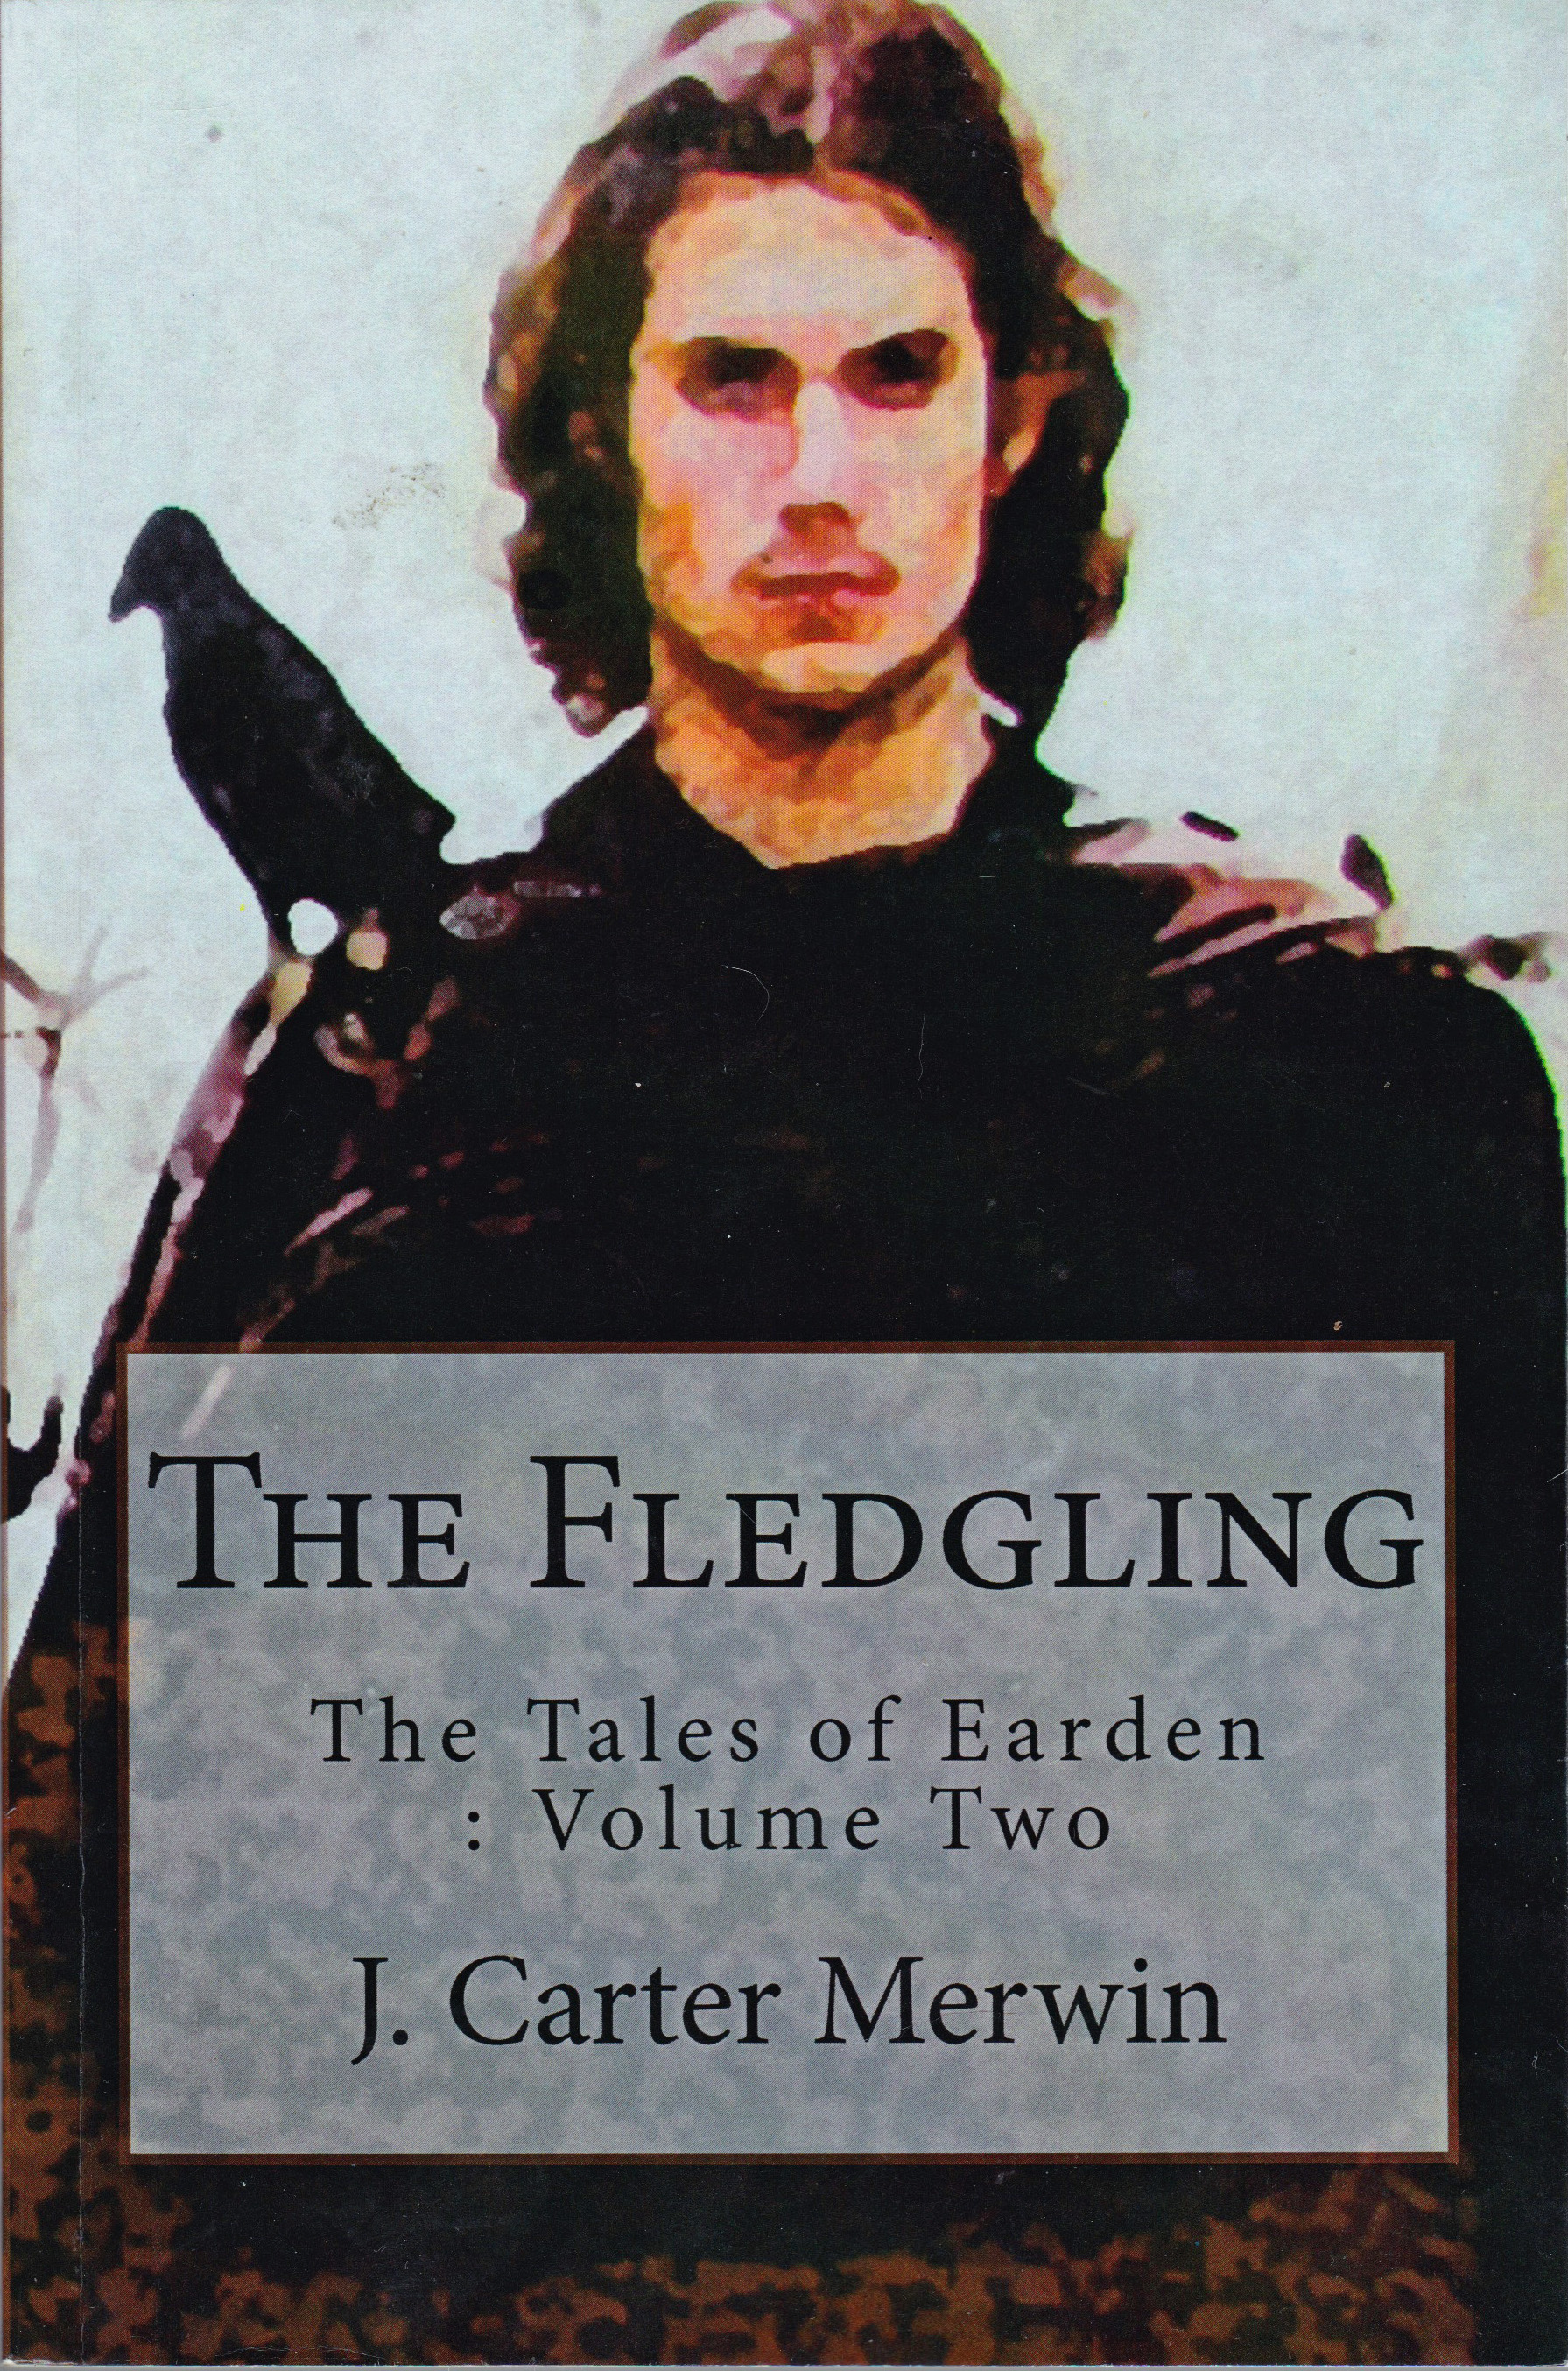 The Fledgling - J Carter Merwin